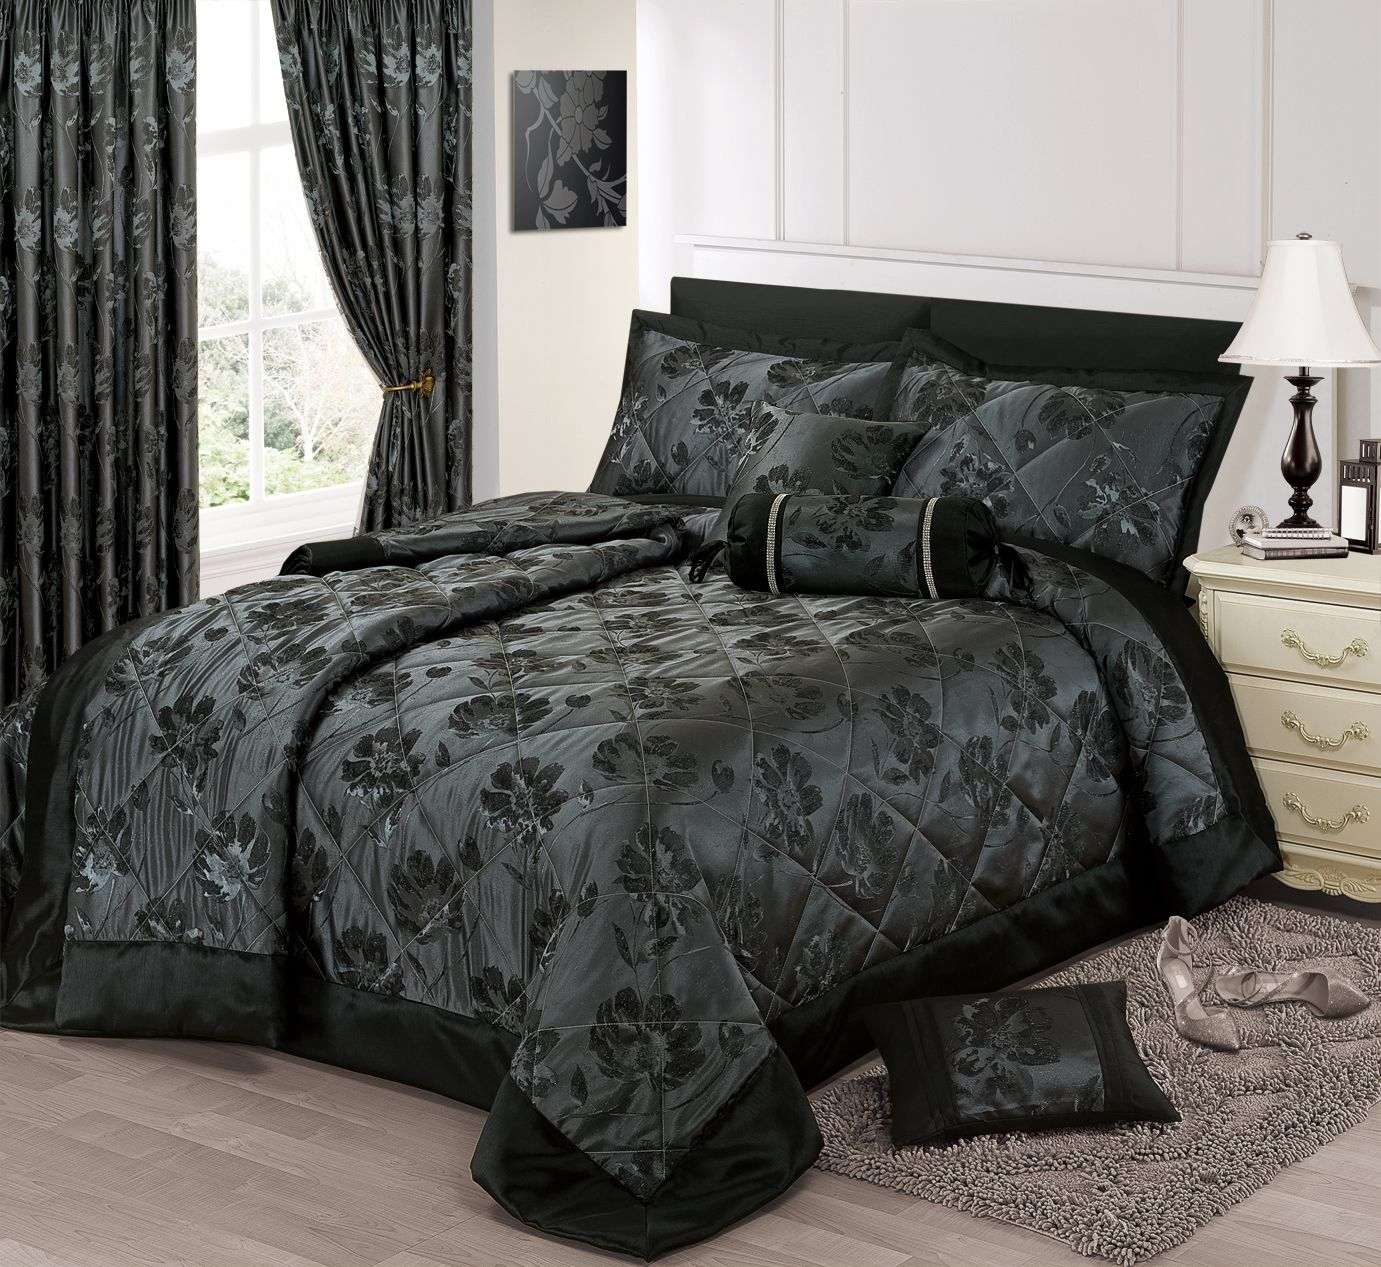 Black And Silver Bed Black Silver Colour Stylish Floral Jacquard Luxury